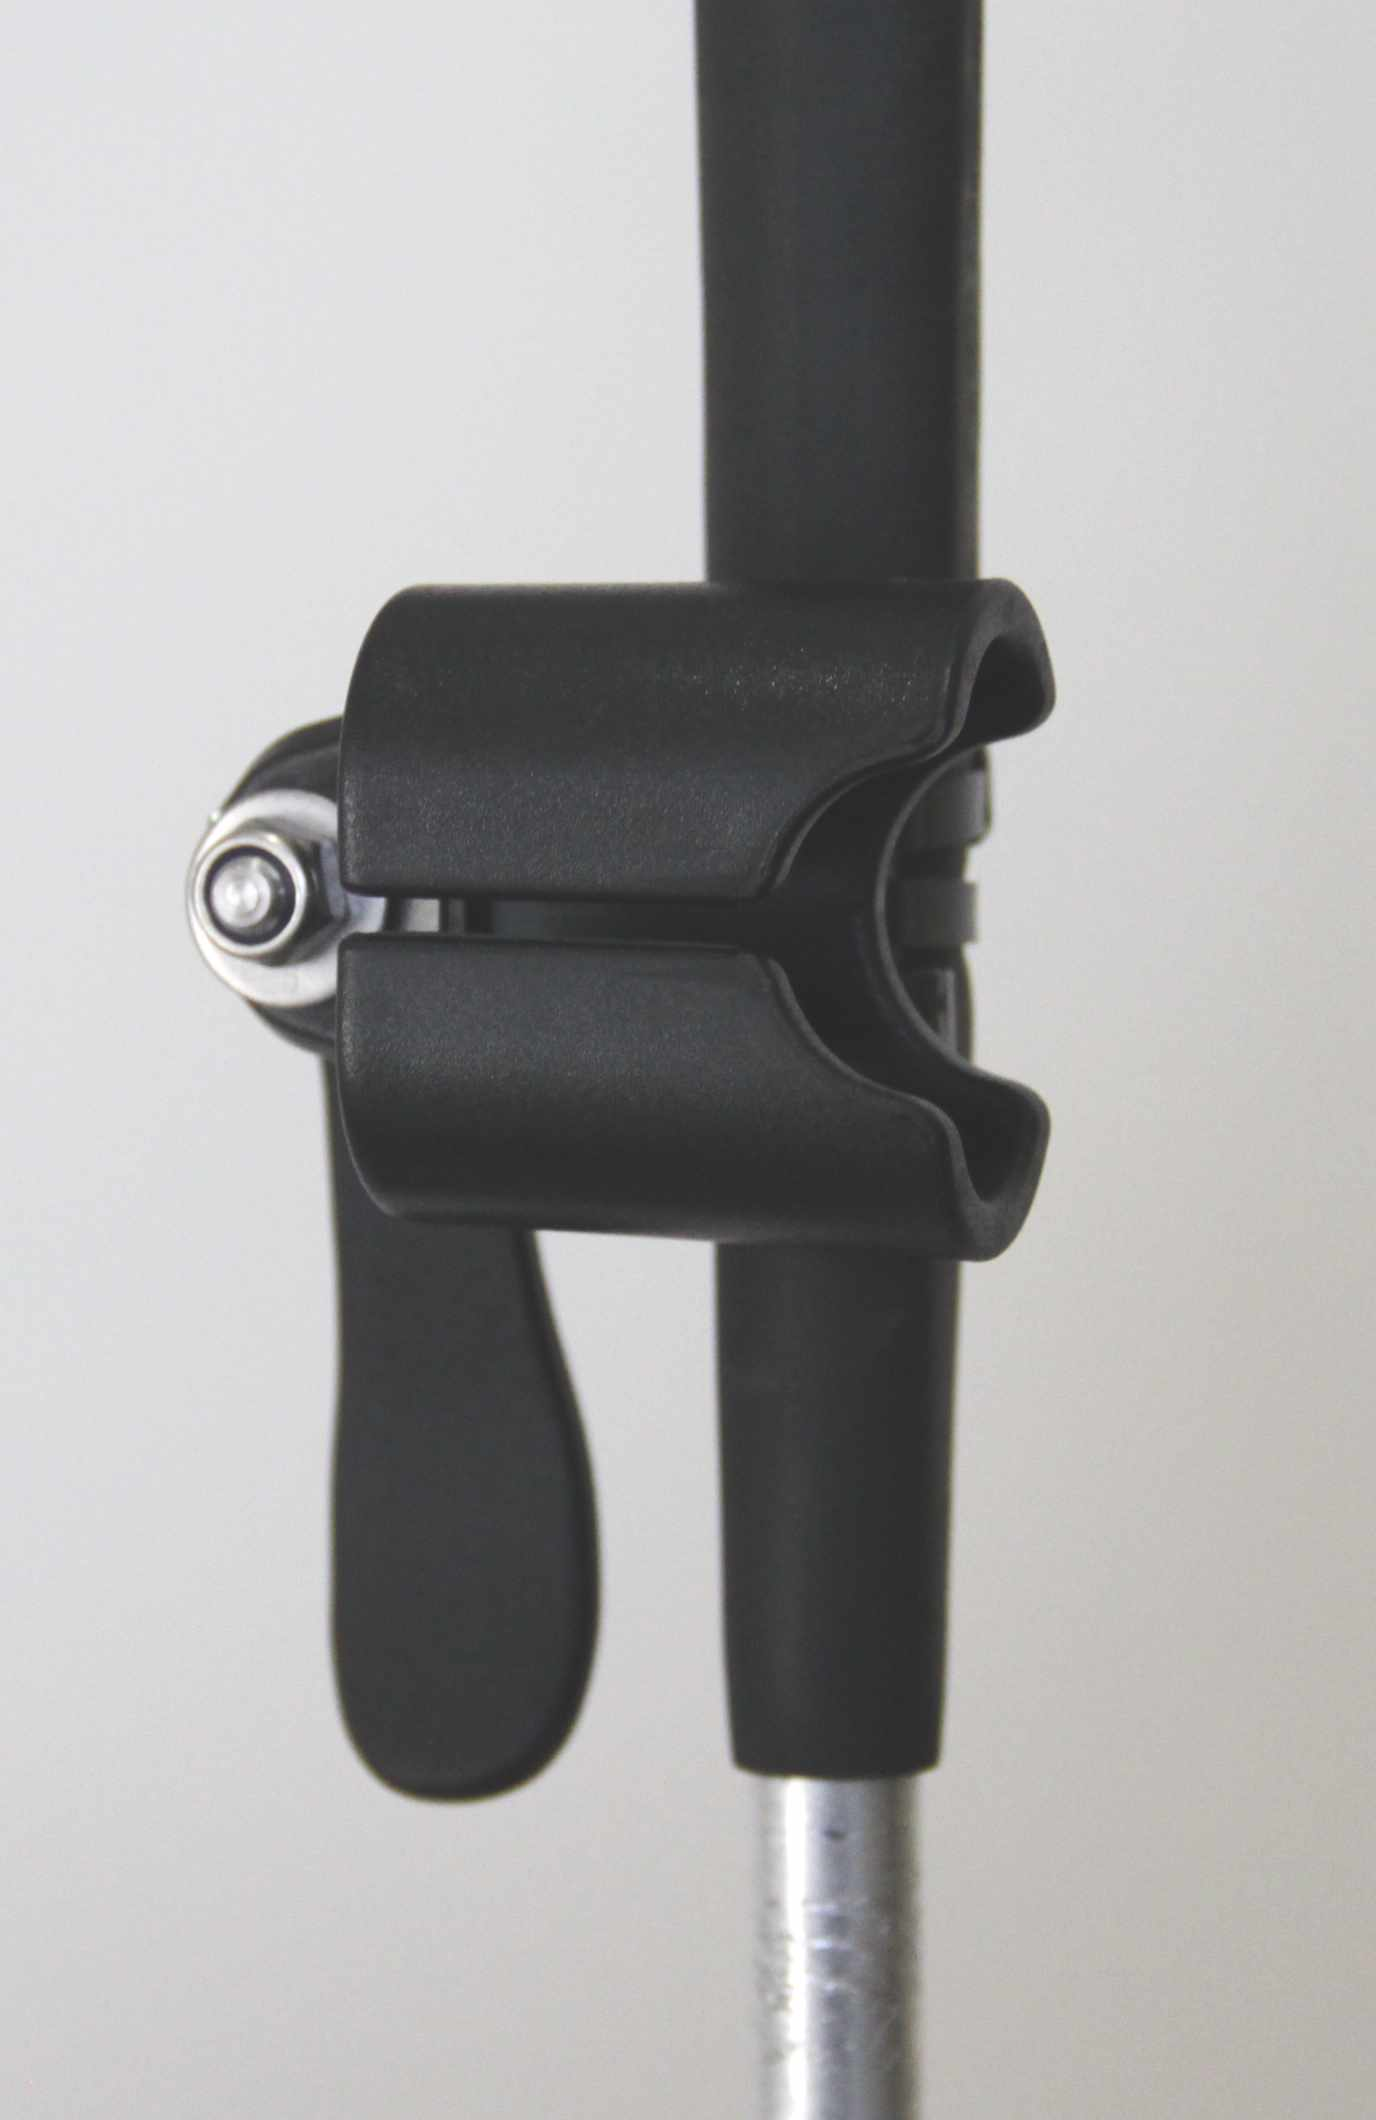 Holder attached to the rubber handle of a cane